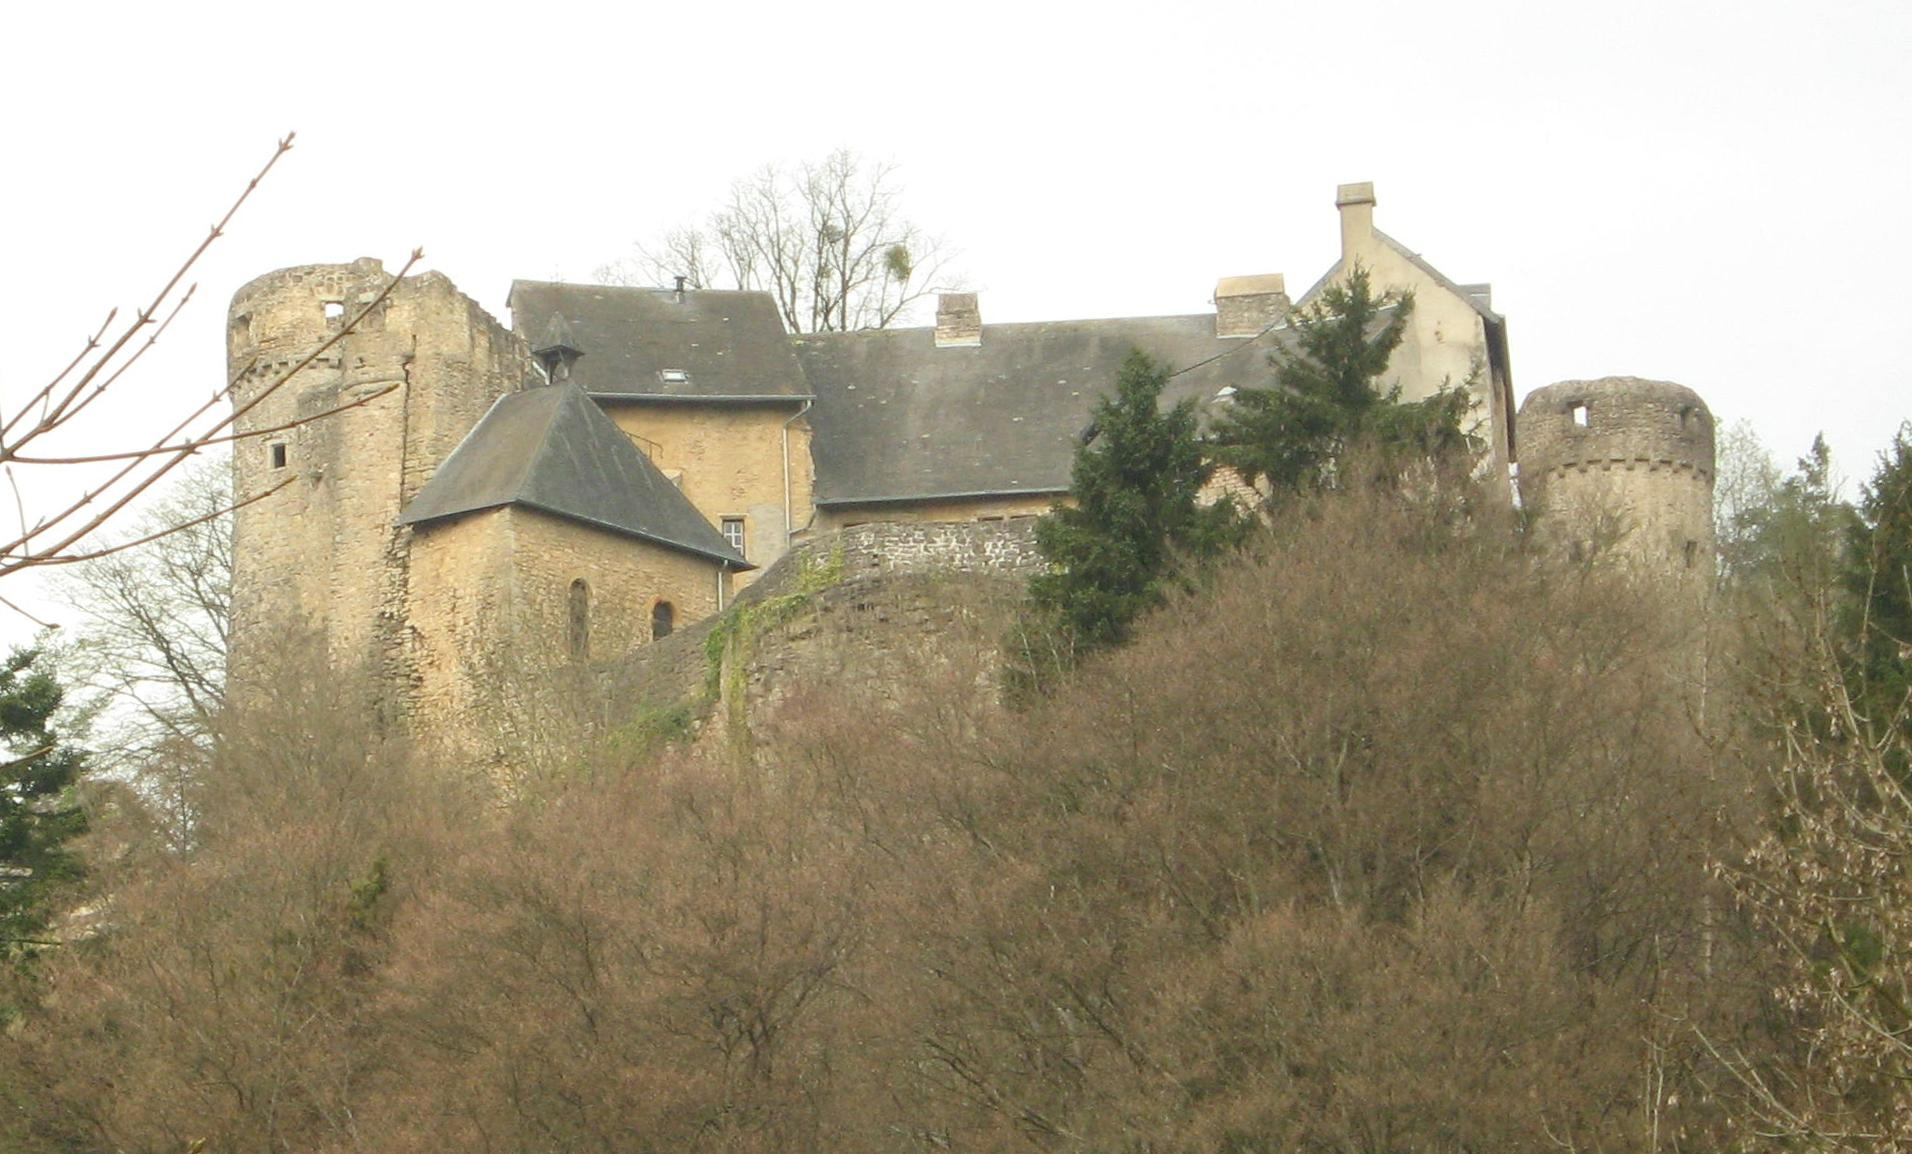 Old Ansembourg Castle, Luxembourg. Photo taken on April 5, 2011.